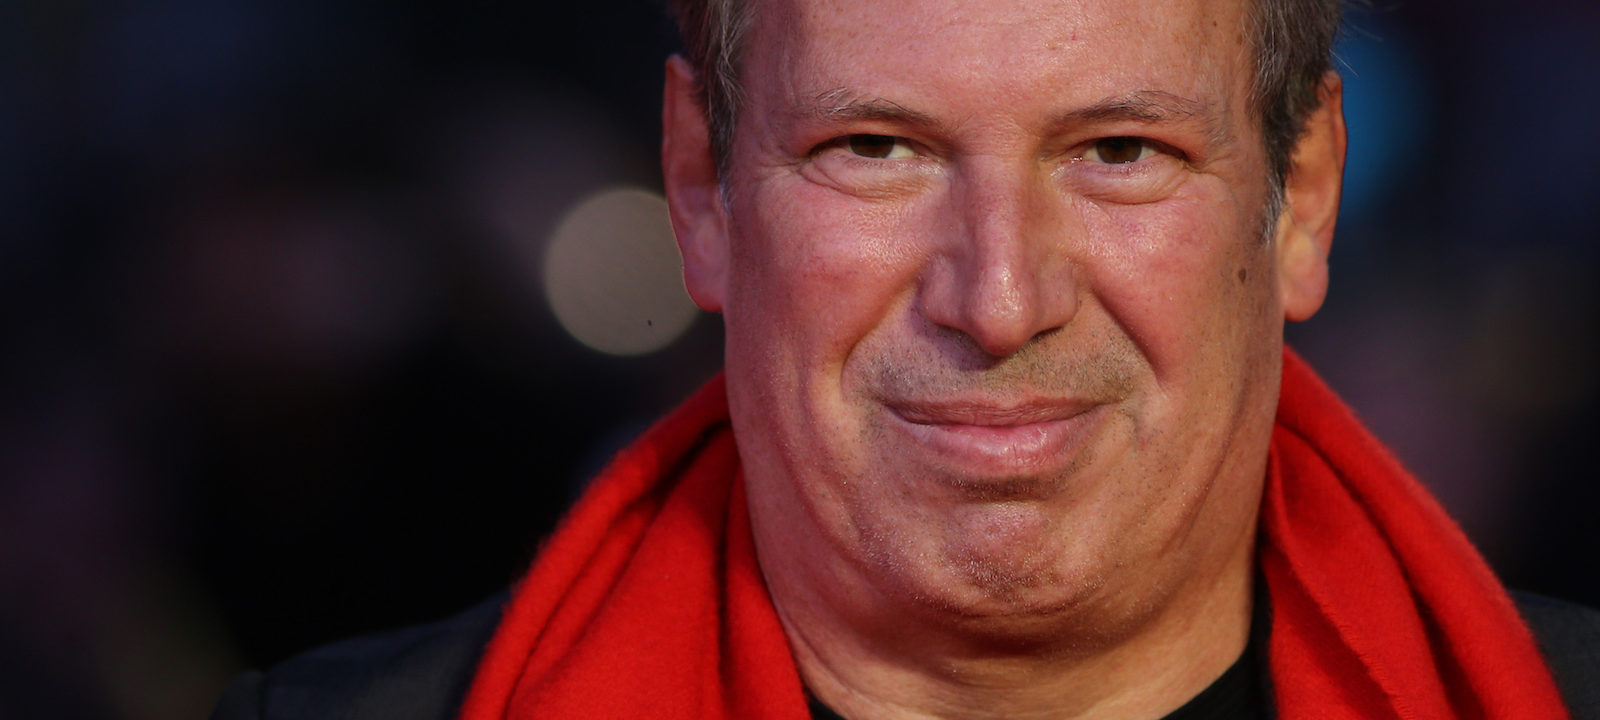 "German composer Hans Zimmer poses for a photograph after arriving to attend the European Premiere of the film ""Batman v Superman: Dawn of Justice"", in central London on March 22, 2016."